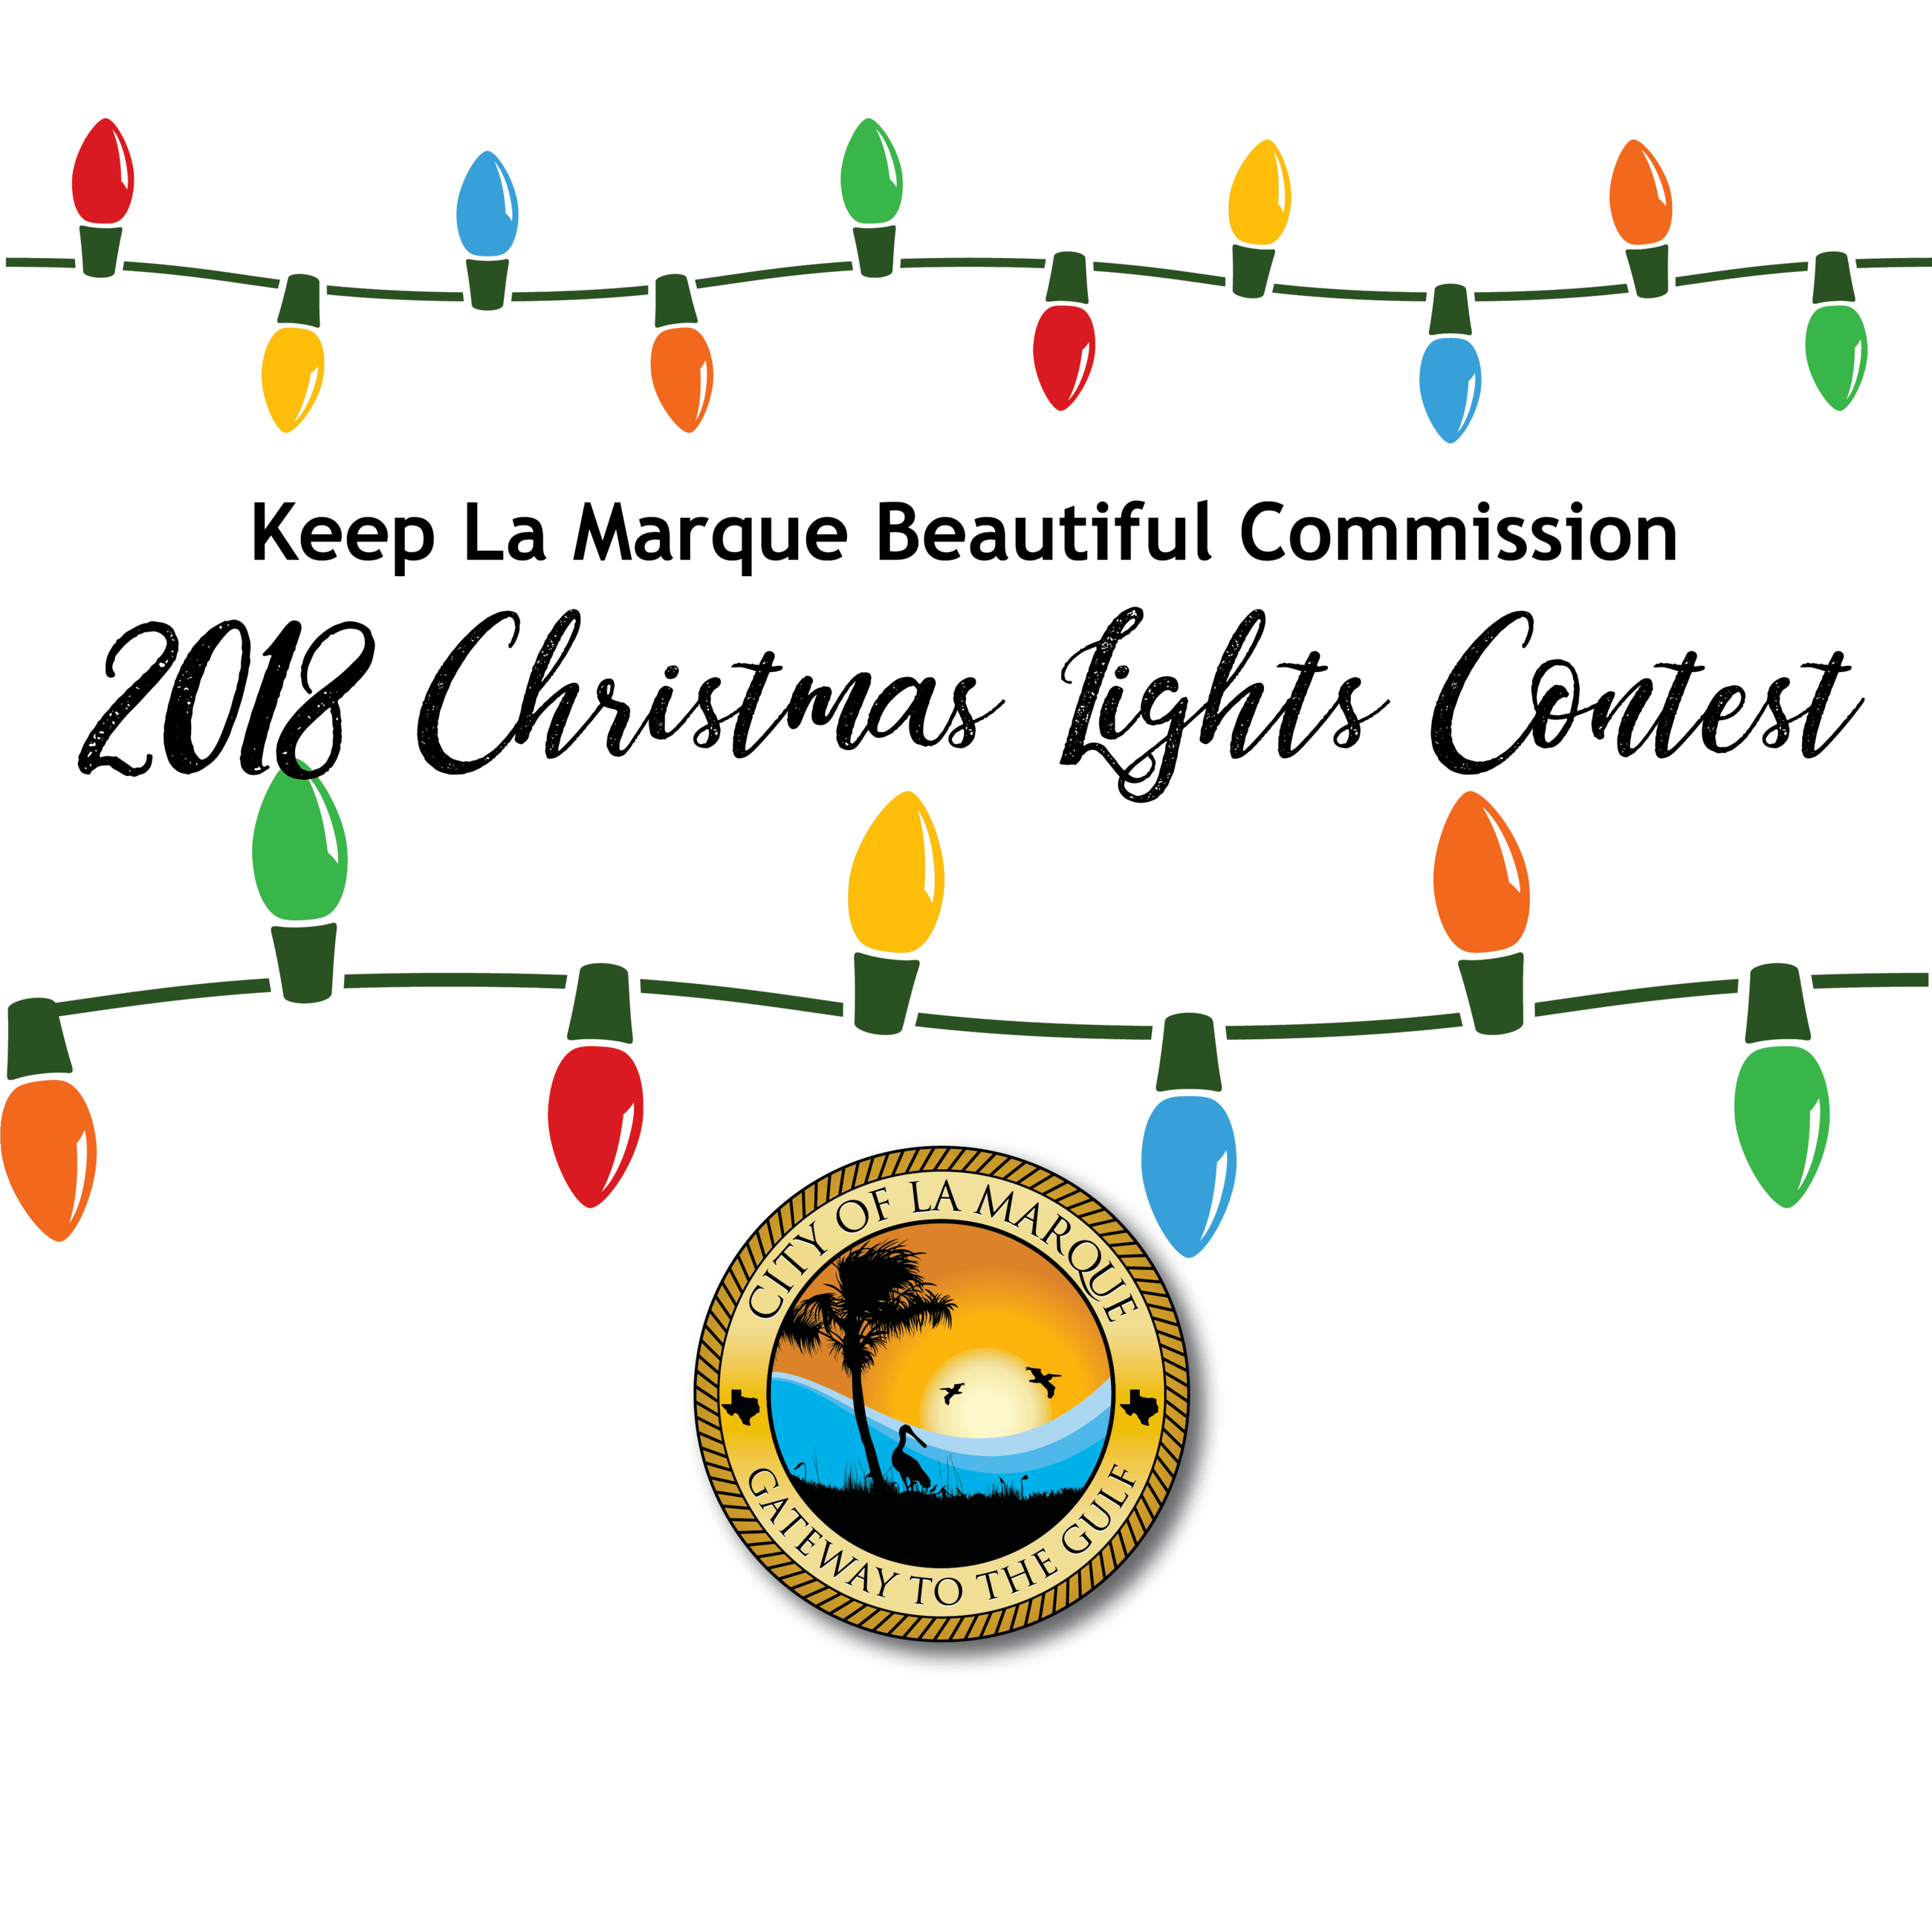 2018 Christmas lights contest graphic